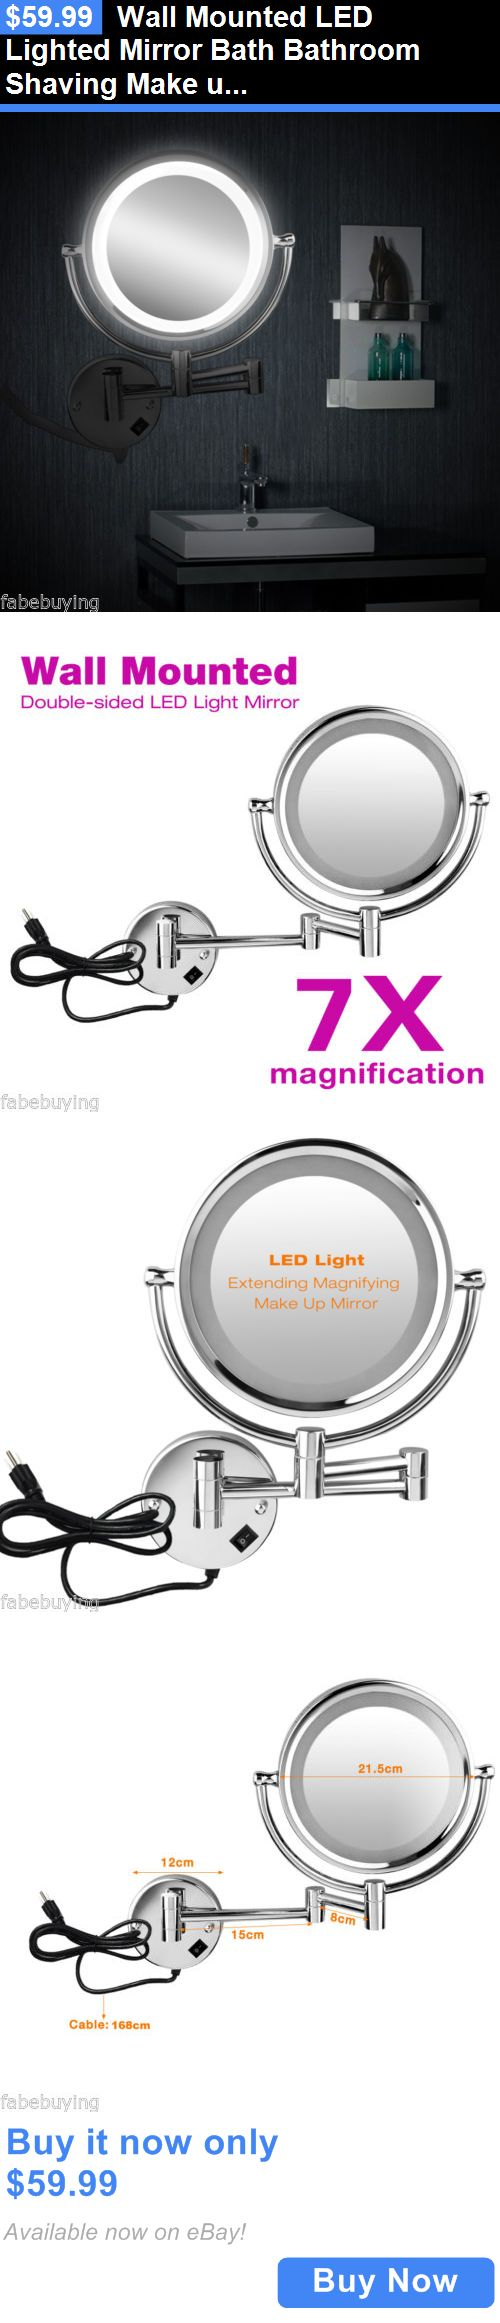 Wall mounted magnifying mirrors for bathrooms - Makeup Mirrors Wall Mounted Led Lighted Mirror Bath Bathroom Shaving Make Up Magnifying Mirror Buy